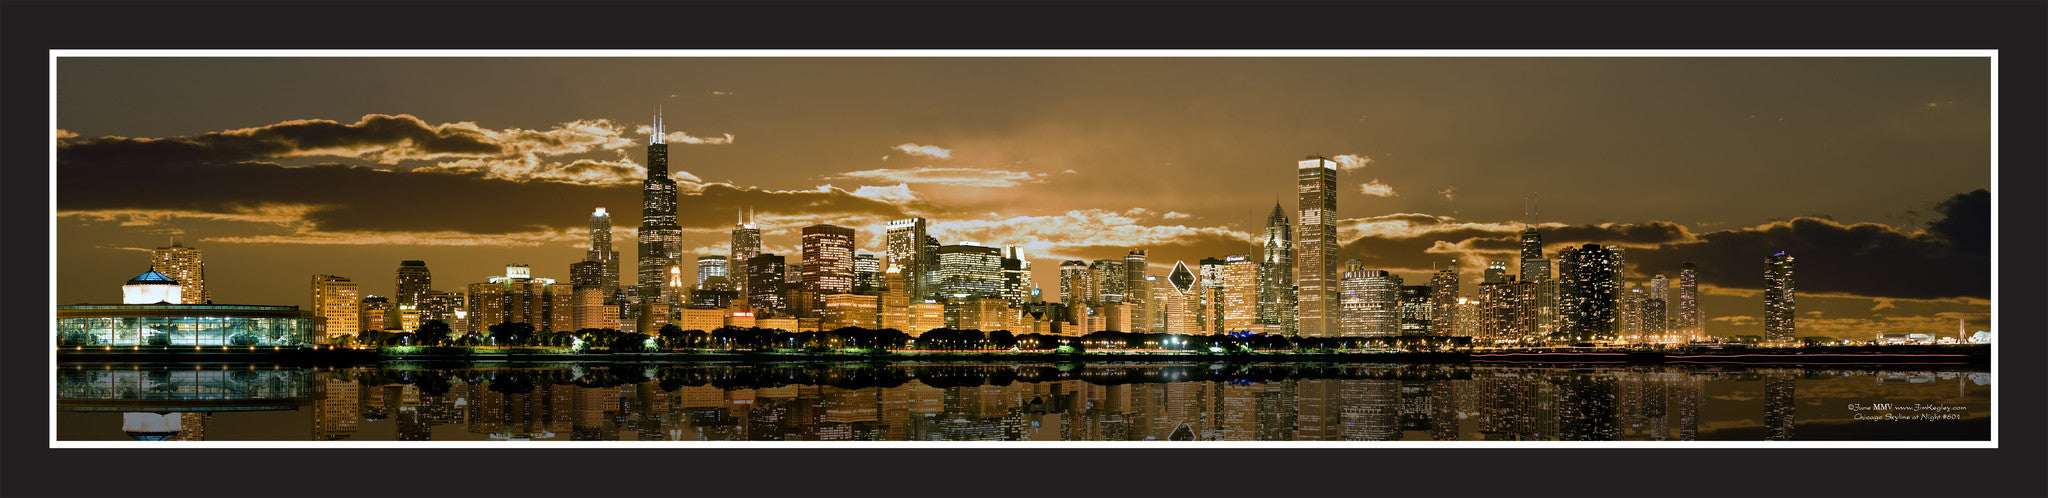 #601 Chicago Skyline Sample 1